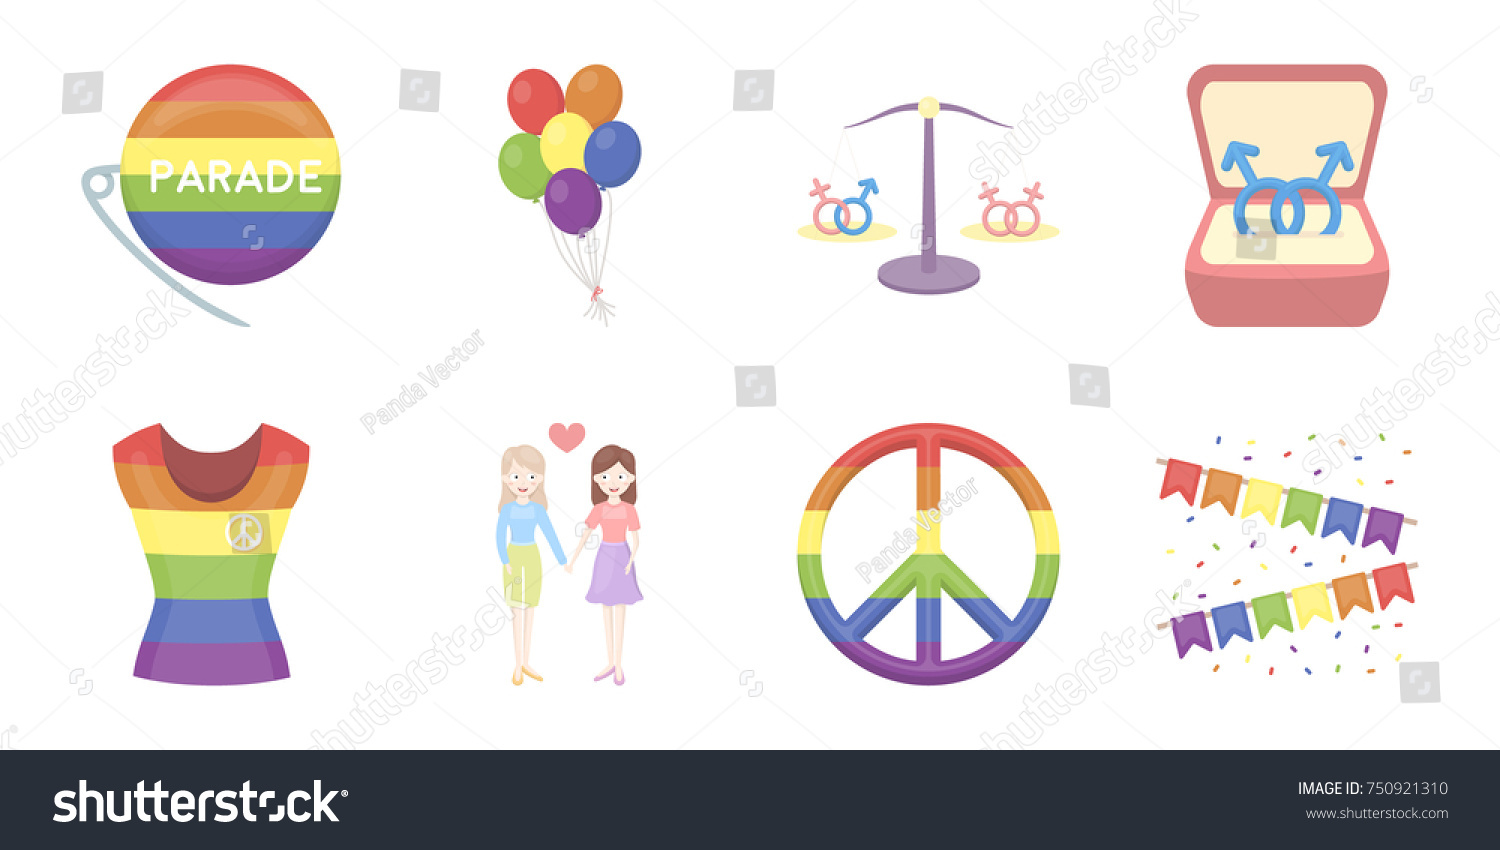 Gay lesbian icons set collection designsexual stock vector gay and lesbian icons in set collection for designxual minority and attributes vector symbol buycottarizona